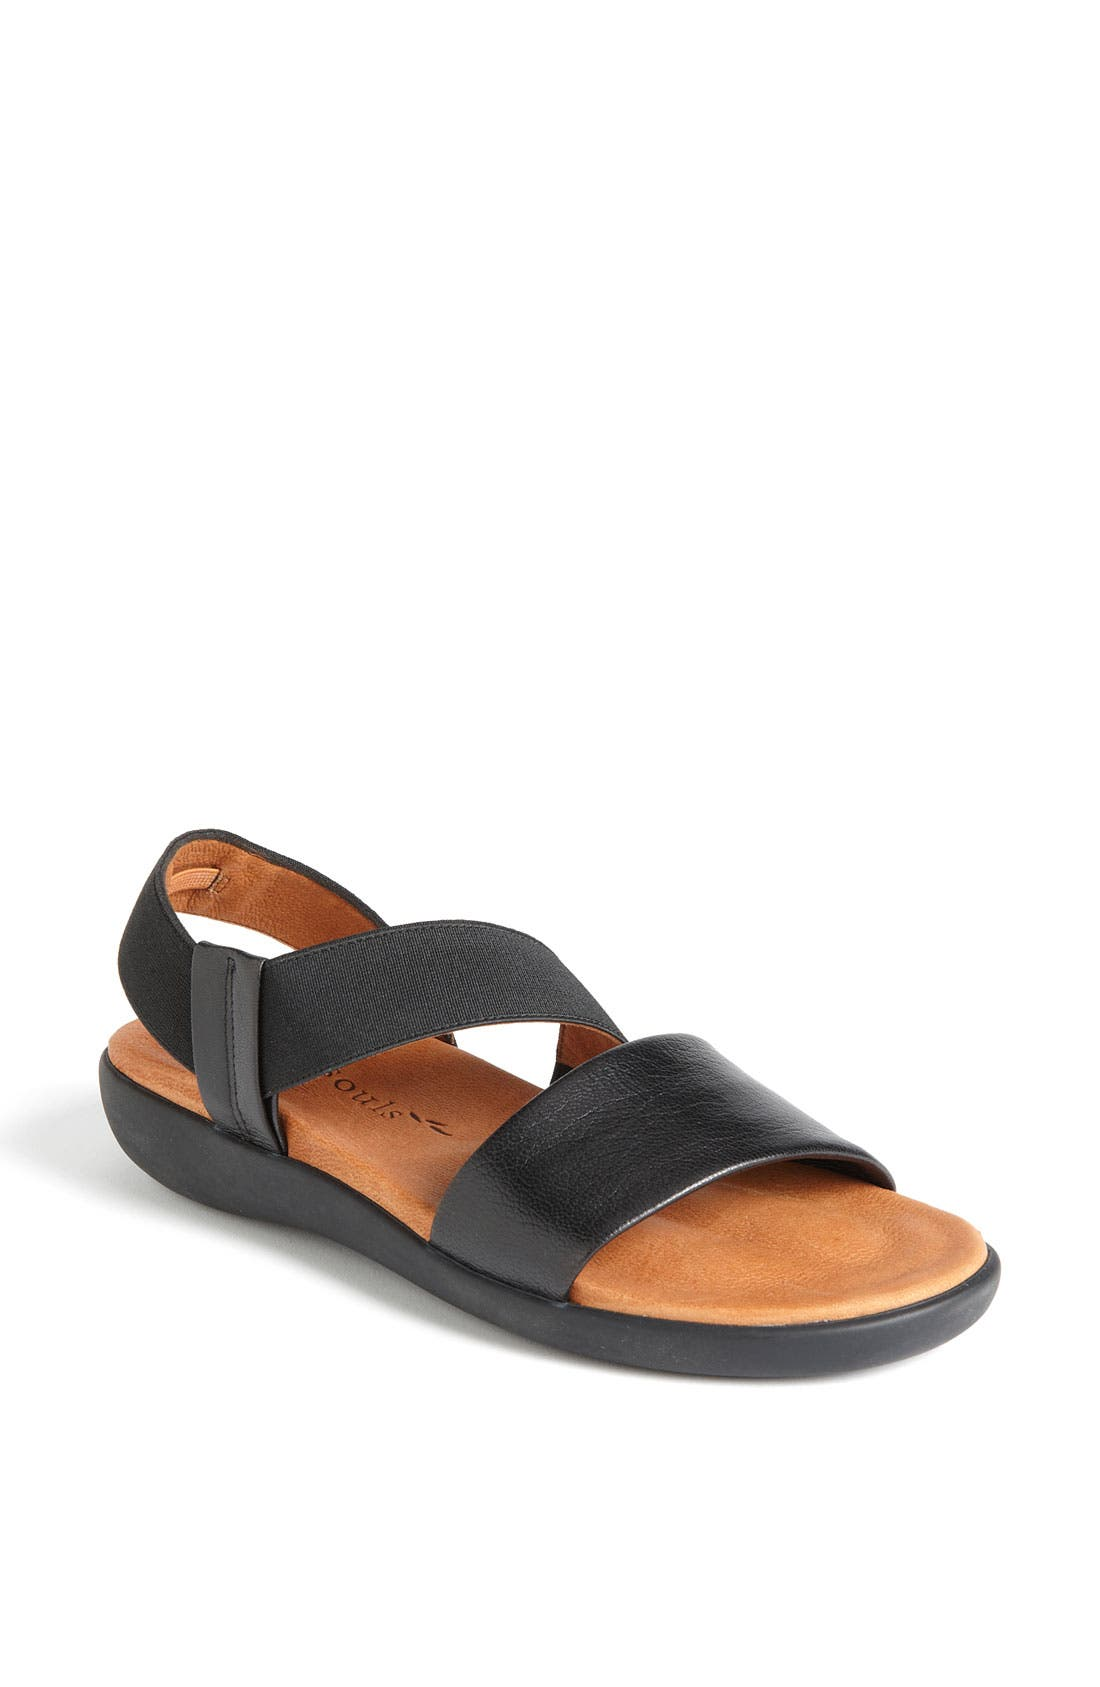 'Get Goin' Sandal,                         Main,                         color, 001